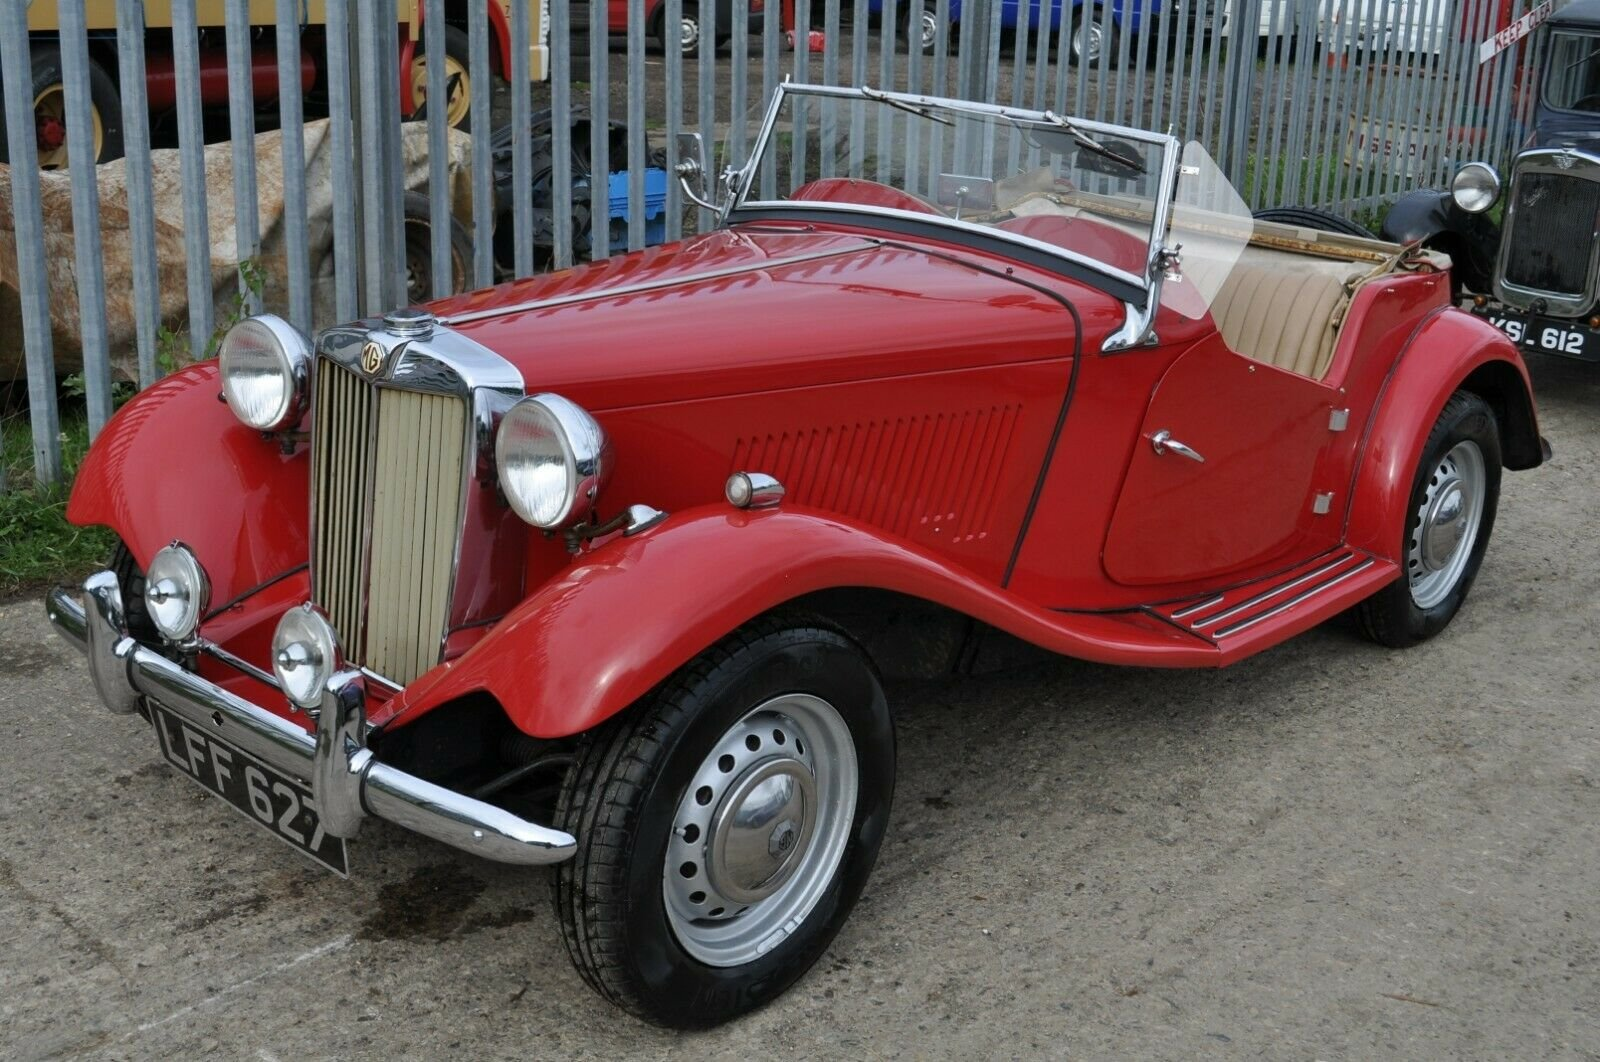 1953 MG TD UK HOME MARKET RHD CLASSIC CAR IN REGULAR USE  SOLD (picture 1 of 6)